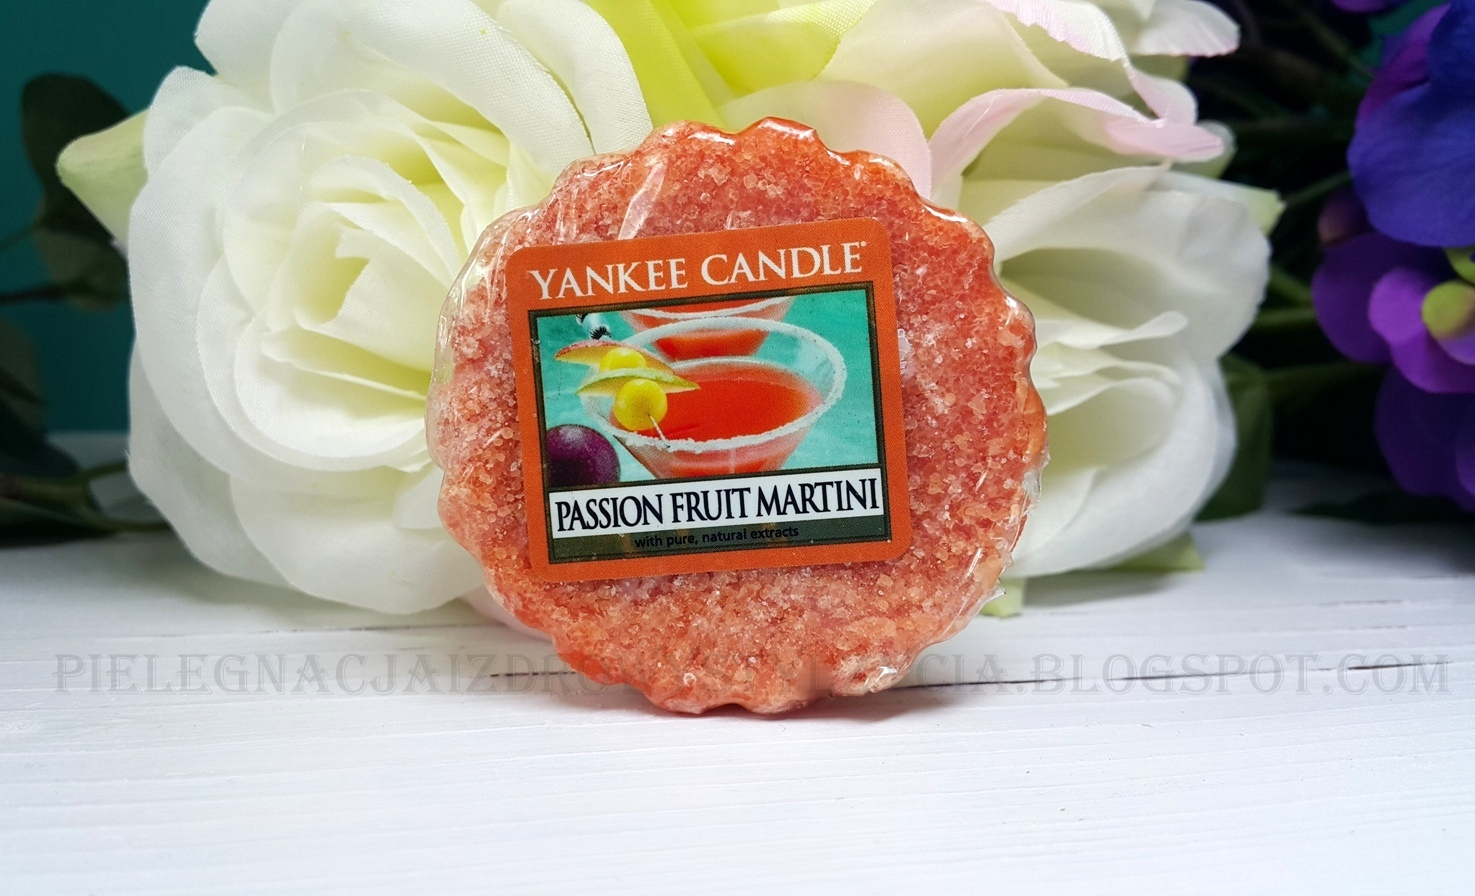 Passion Fruit Martini Yankee Candle